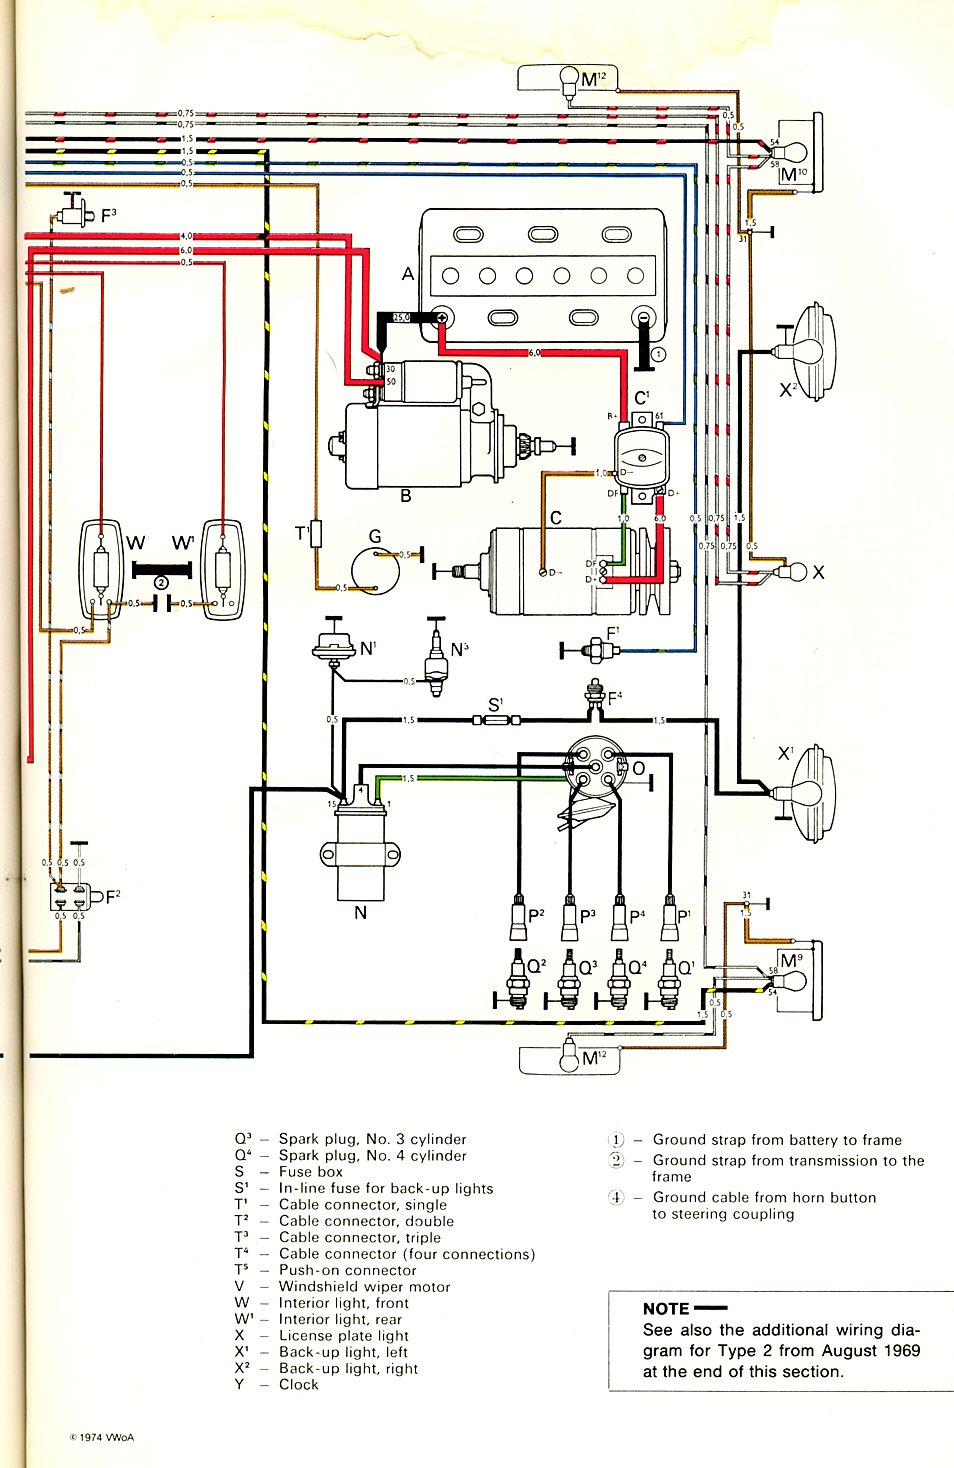 Type 2 Wiring Diagrams 2000 Saturn Alternator Diagram Free Download